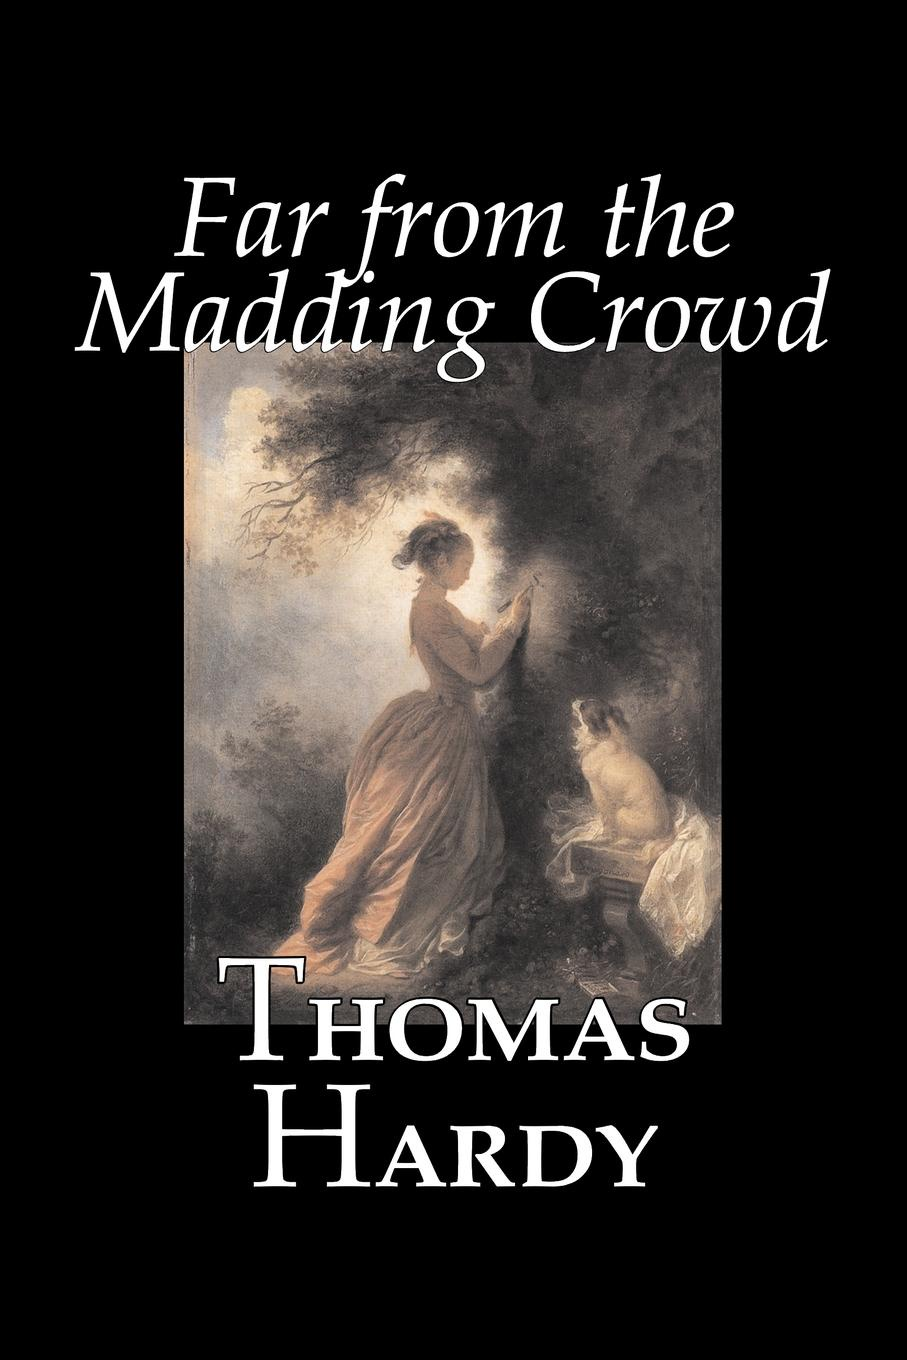 Thomas Hardy Far from the Madding Crowd by Thomas Hardy, Fiction, Literary thomas hardy the withered arm